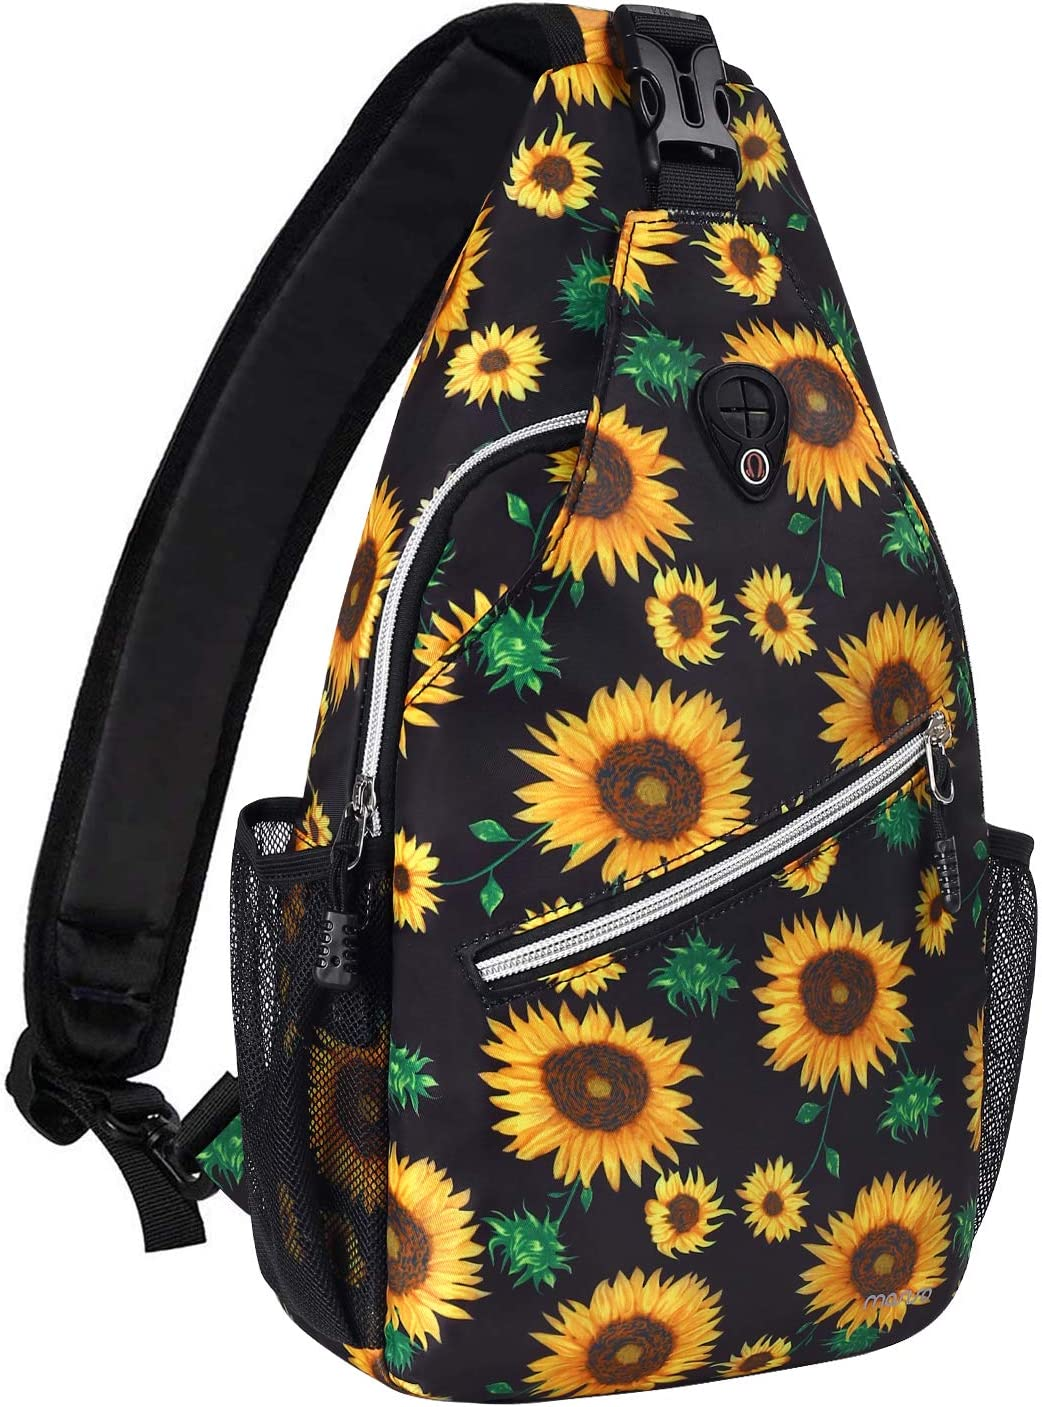 MOSISO Sling Backpack, Travel Hiking Daypack Pattern Rope Crossbody Shoulder Bag, Black Base Sunflower : Sports & Outdoors